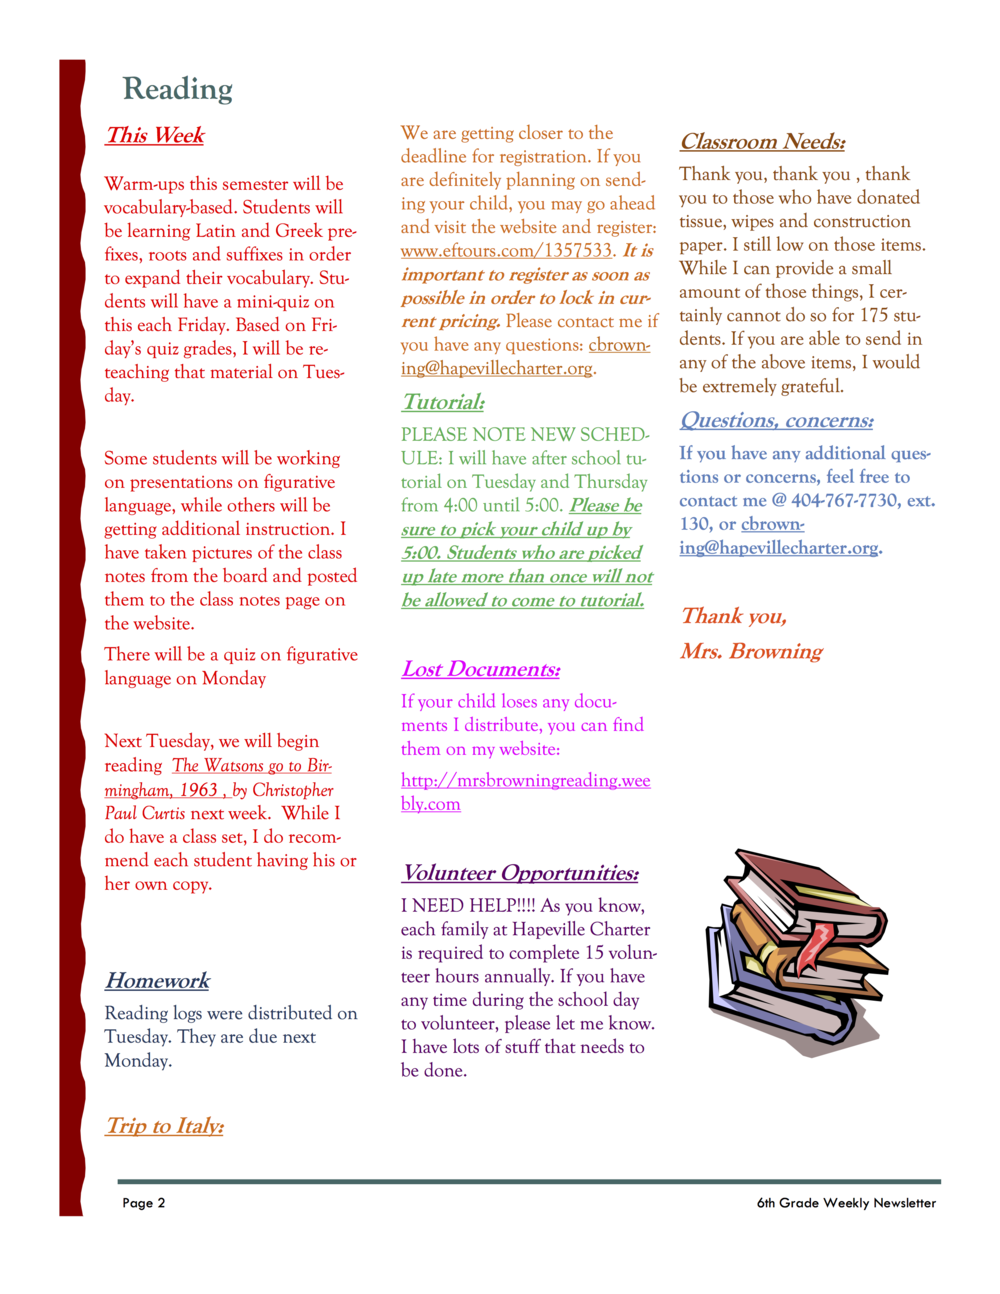 6th grade newsletter January 21B.png